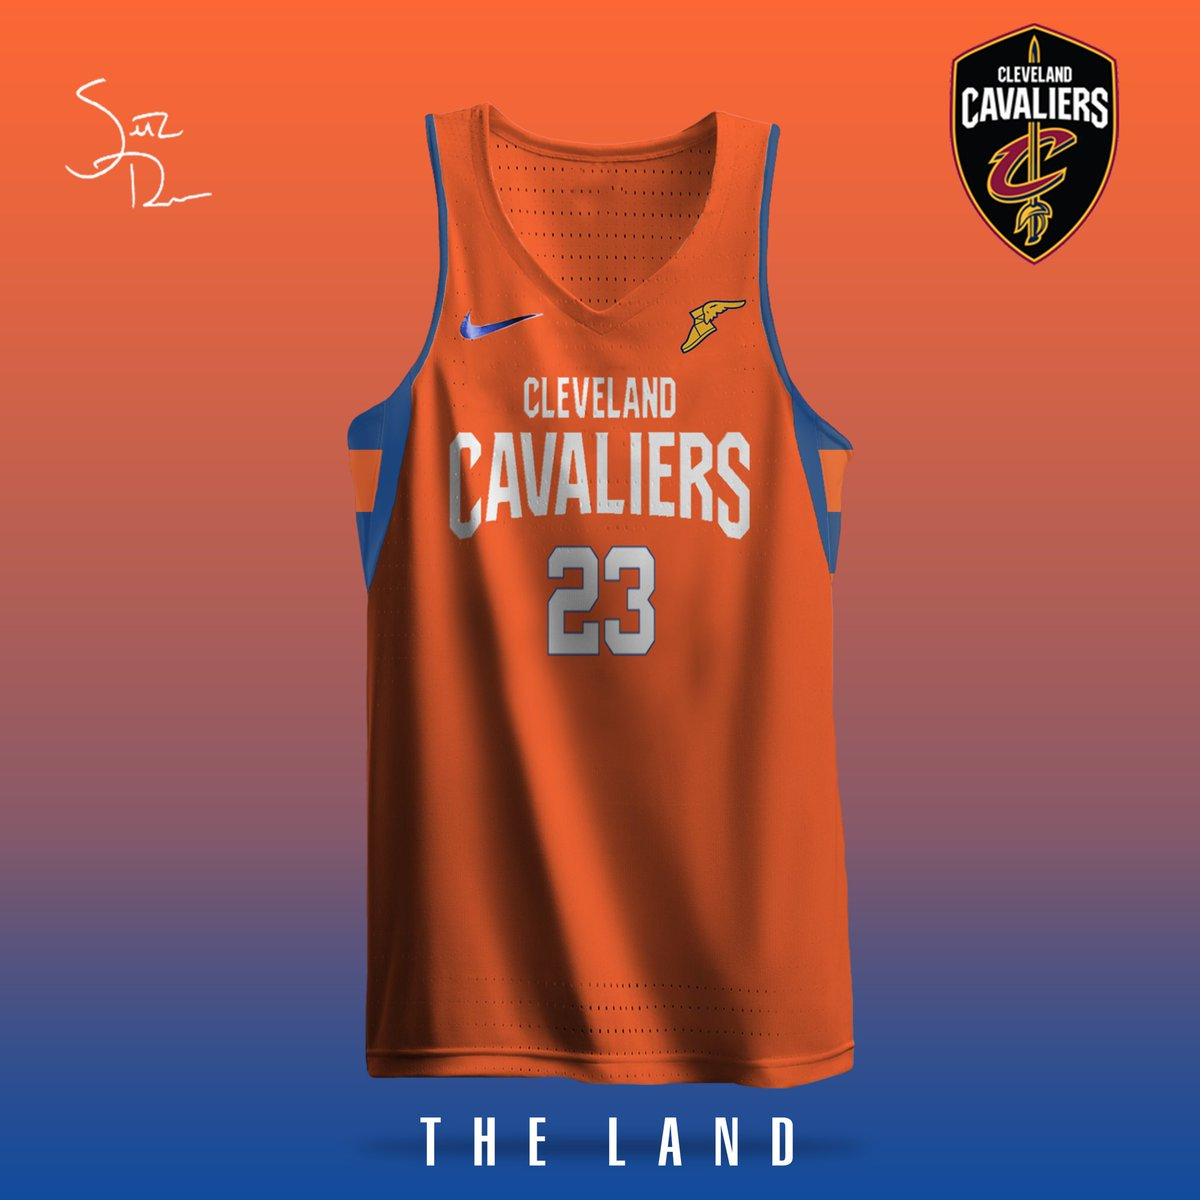 6f978d5d35e @Cavs 2017-18 jersey concepts.... Cavs fans, RT if you'd wear one!pic. twitter.com/BNJMQB4iaM